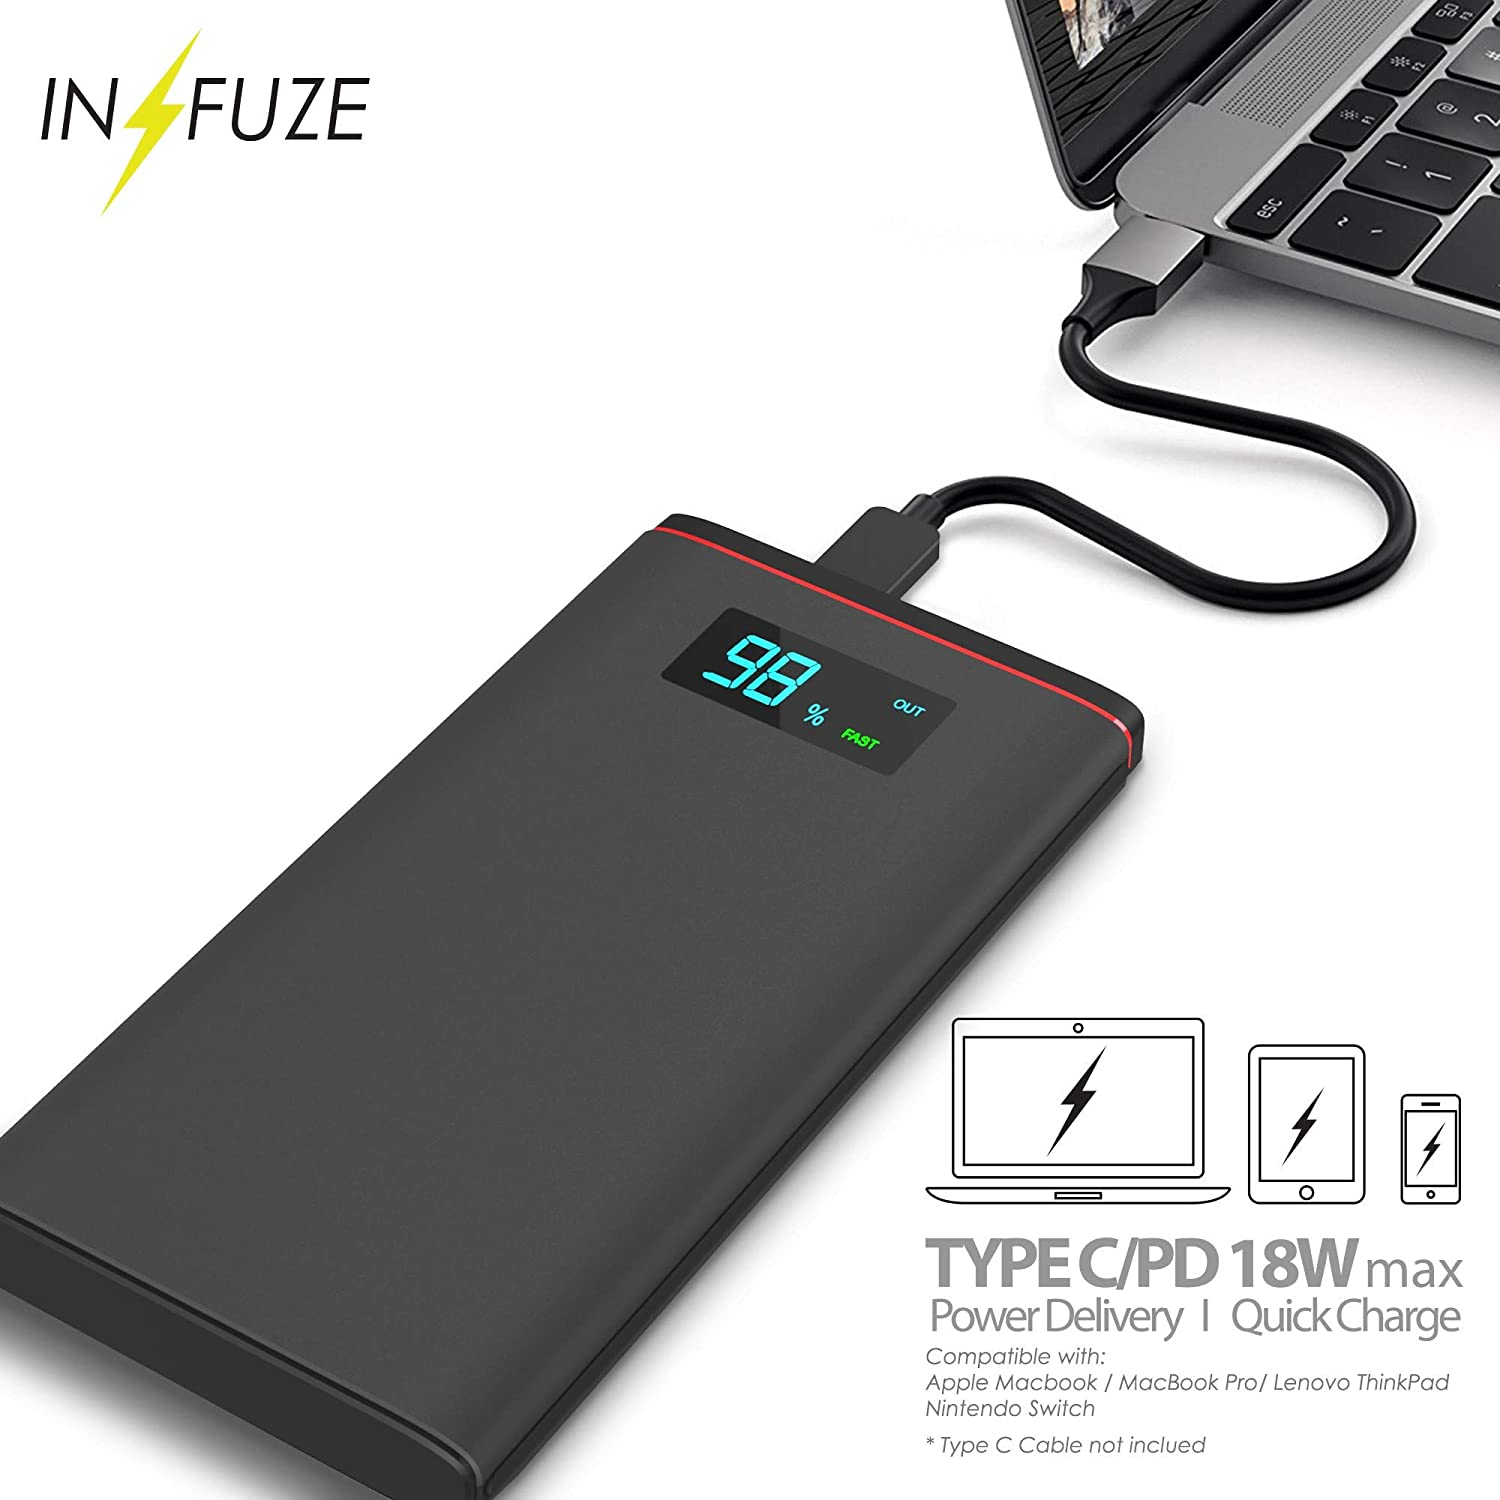 CustomCustom Personalized Universal Power Bank//Led Indicator PD Power Delivery 12000 mAh External Battery Aluminum Frame//Compatible with iPhone and Galaxy Phones